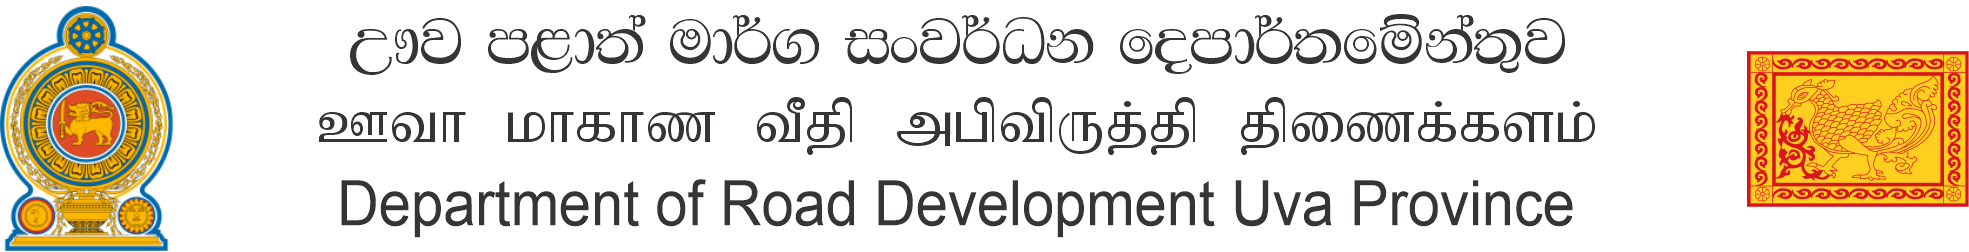 Department of Road Development Uva Province